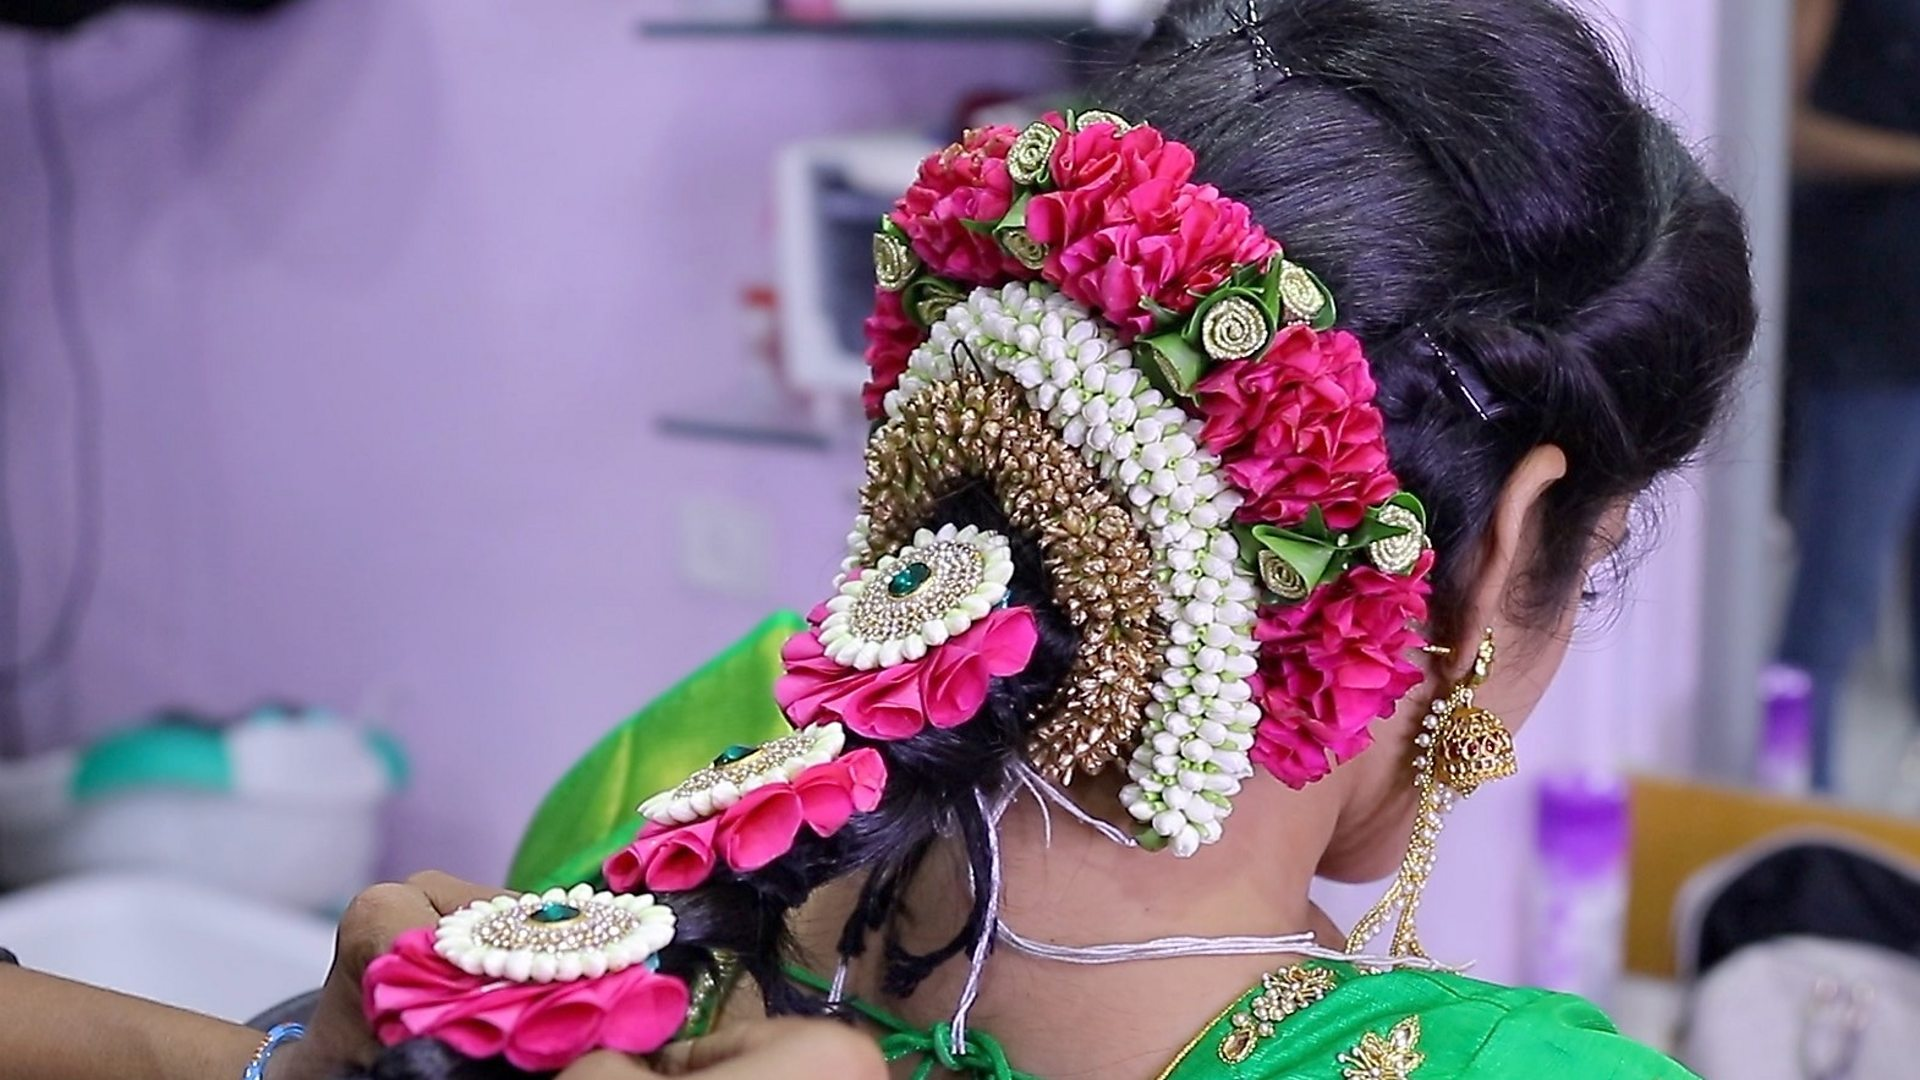 The Indian engineer whose floral headpieces went viral   BBC News 1920x1080